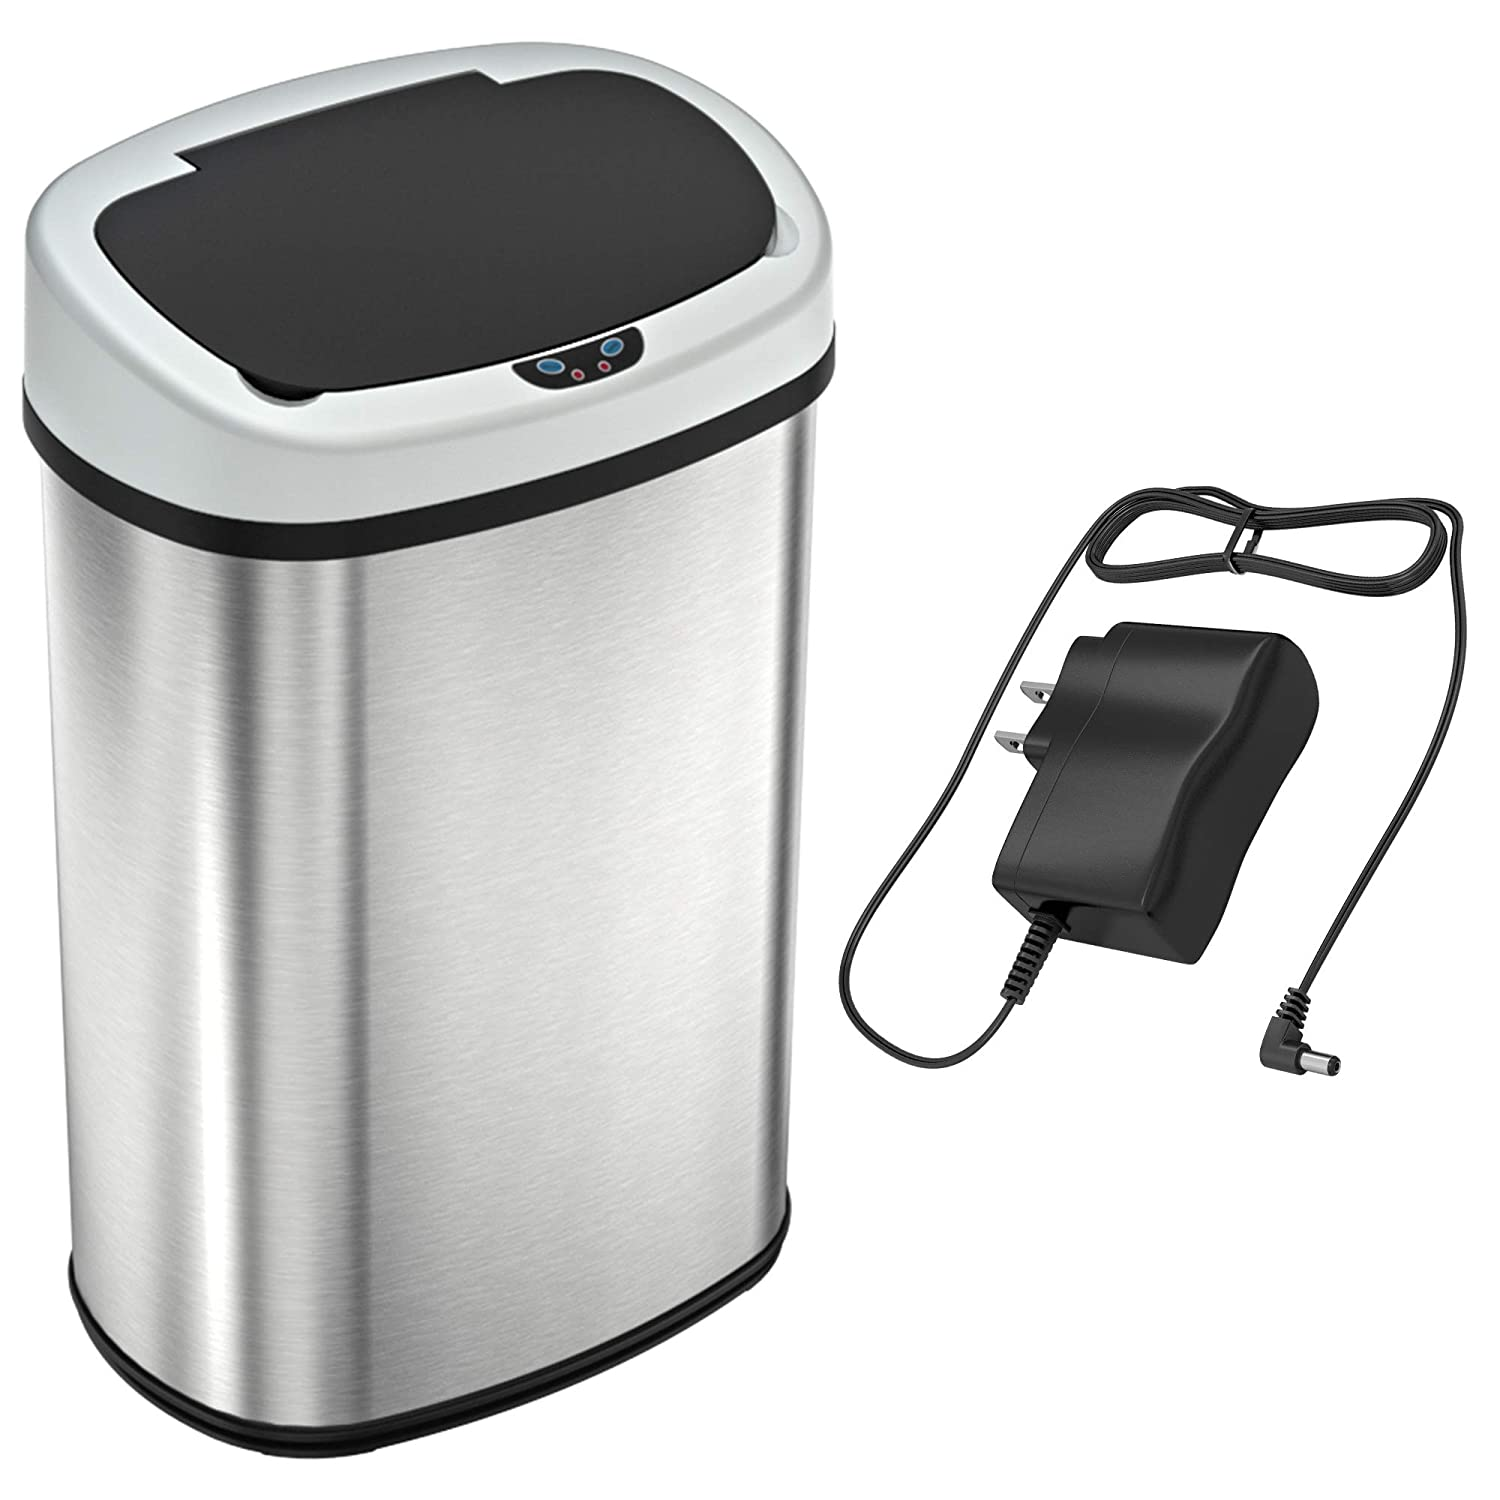 SensorCan Automatic Touchless Sensor Kitchen Trash Can with Odor Filter Kit - Stainless Steel – 13 Gallon / 49 Liter – Oval Shape